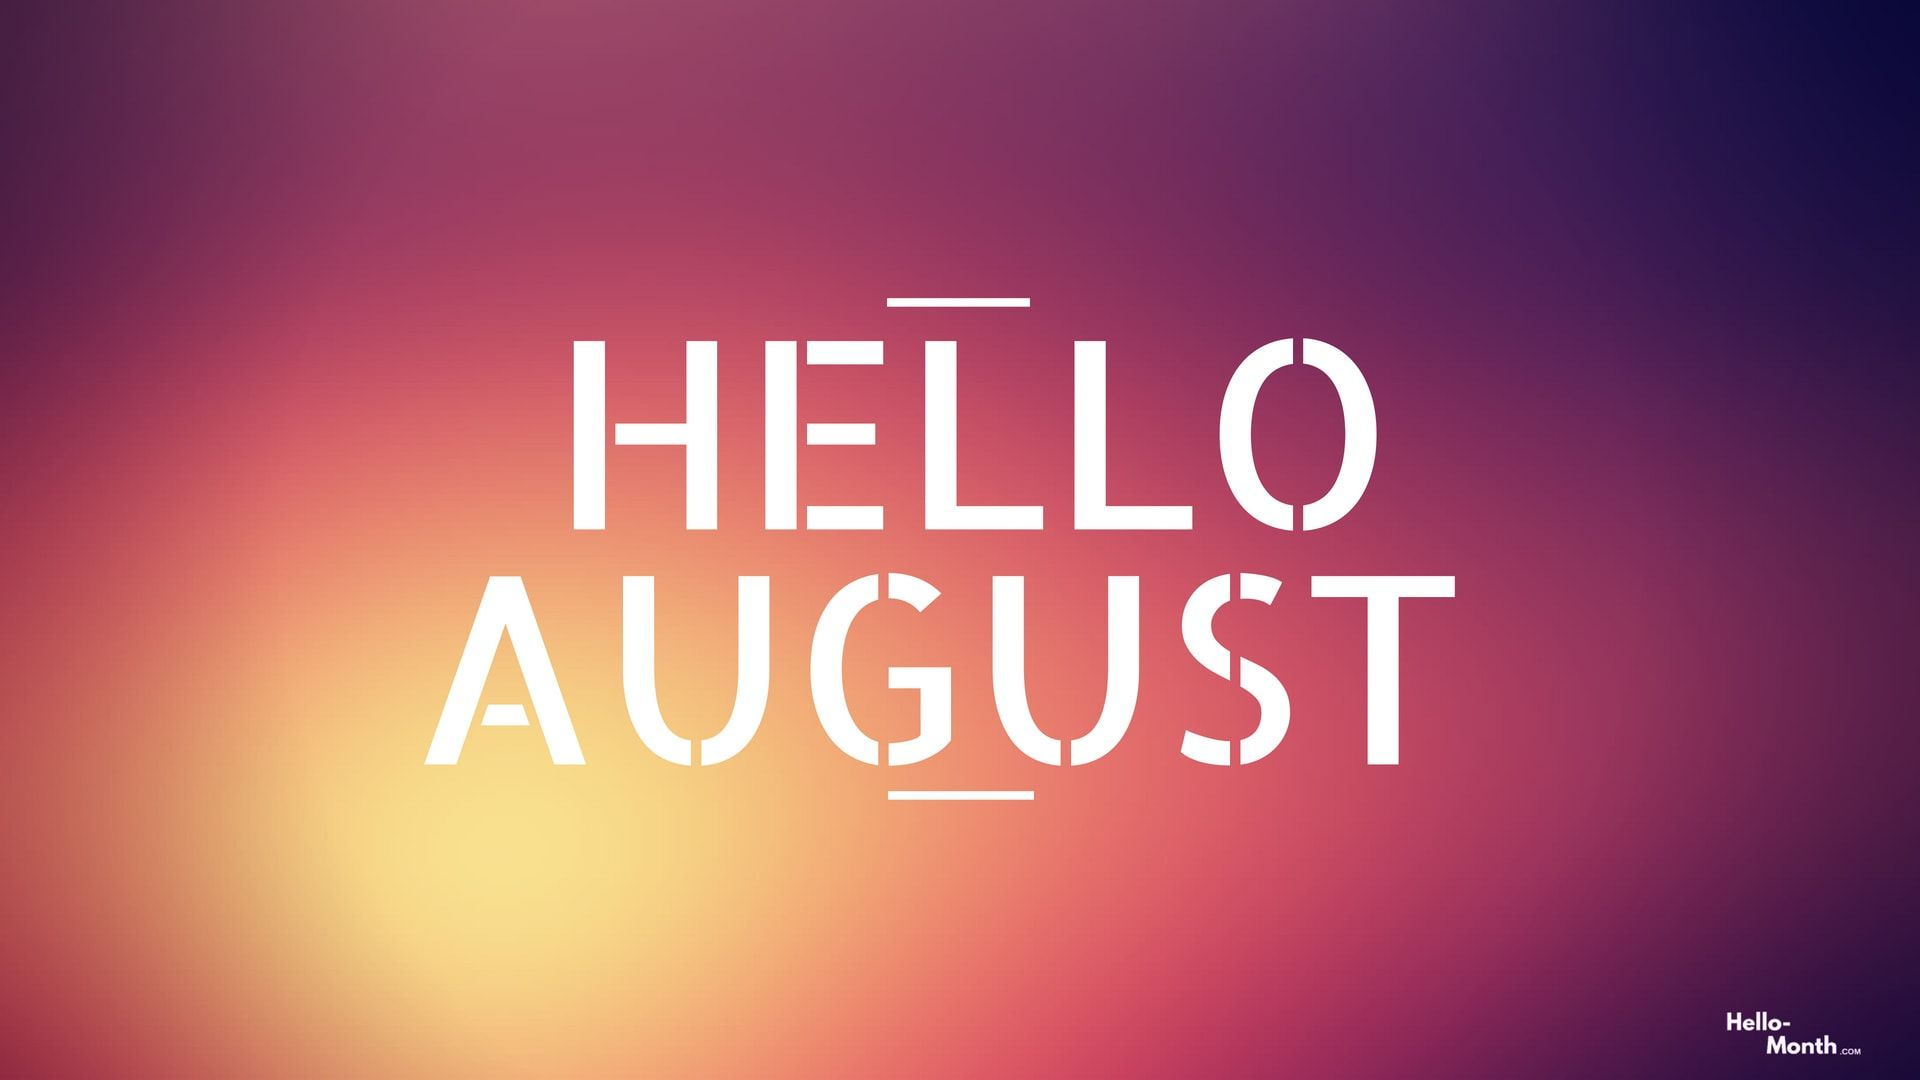 1920x1080 Free Images of Hello August Tumblr with Quotes   Pinterest ...